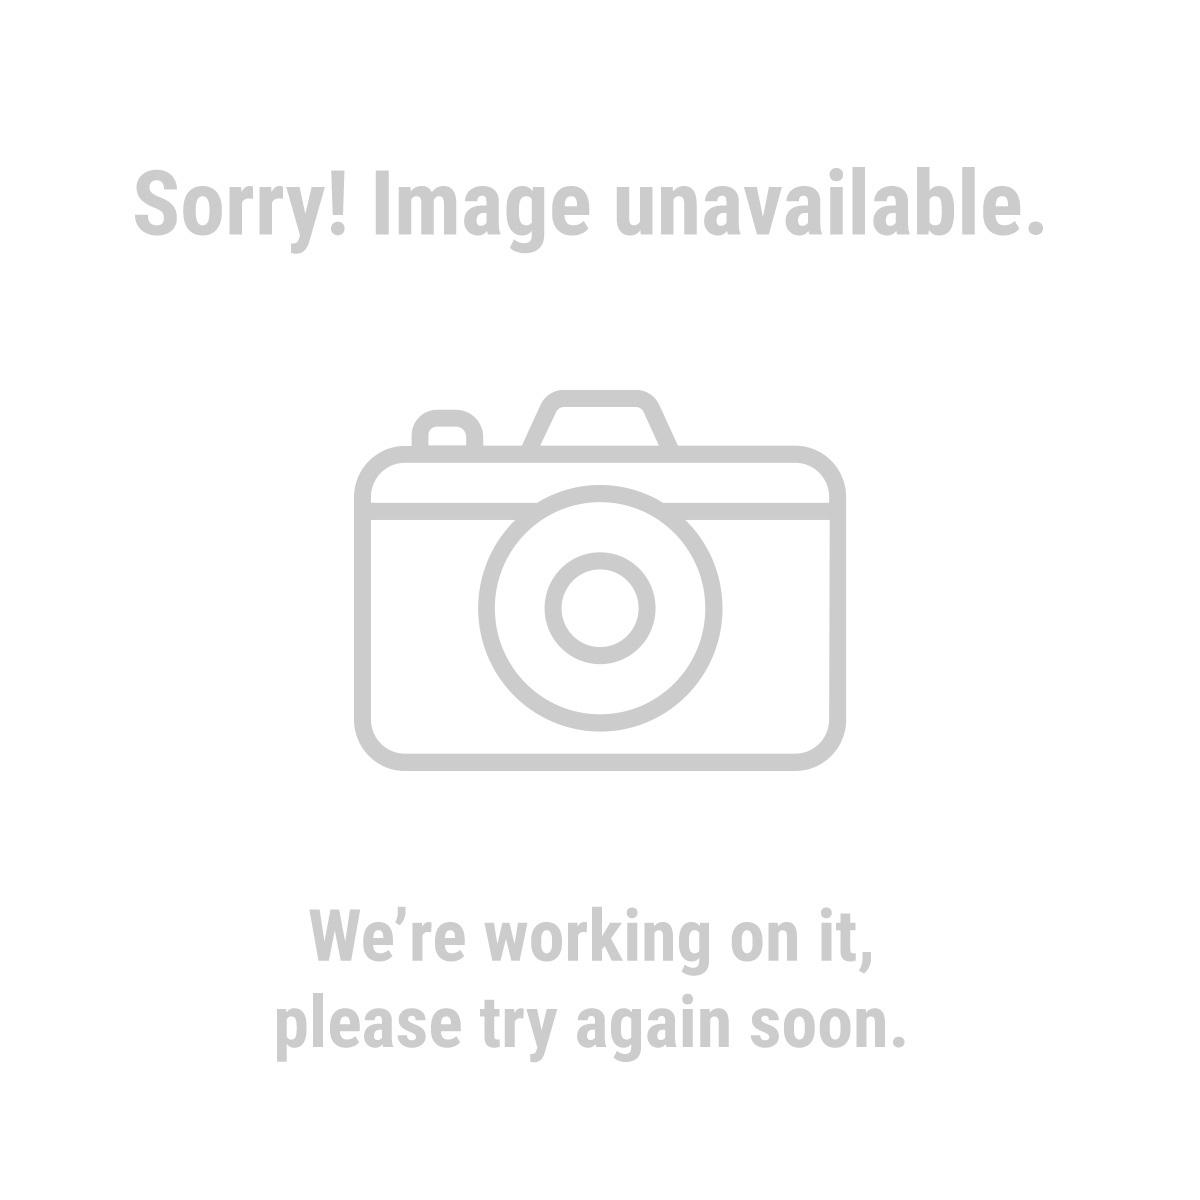 Predator Engines 60363 6.5 HP (212cc) OHV Horizontal Shaft Gas Engine EPA